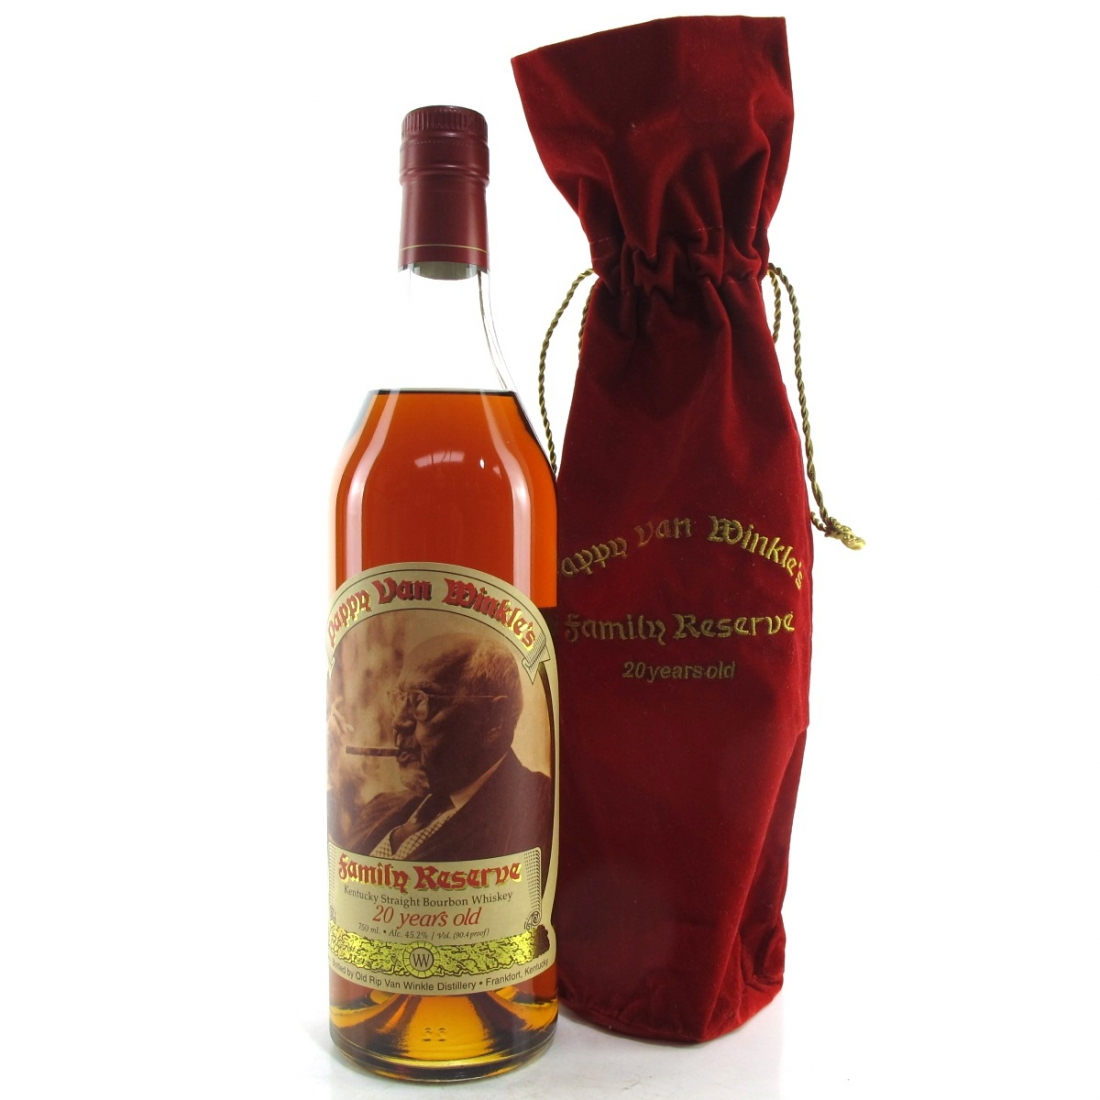 Pappy Van Winkle 20 Year Old Family Reserve / Stitzel-Weller